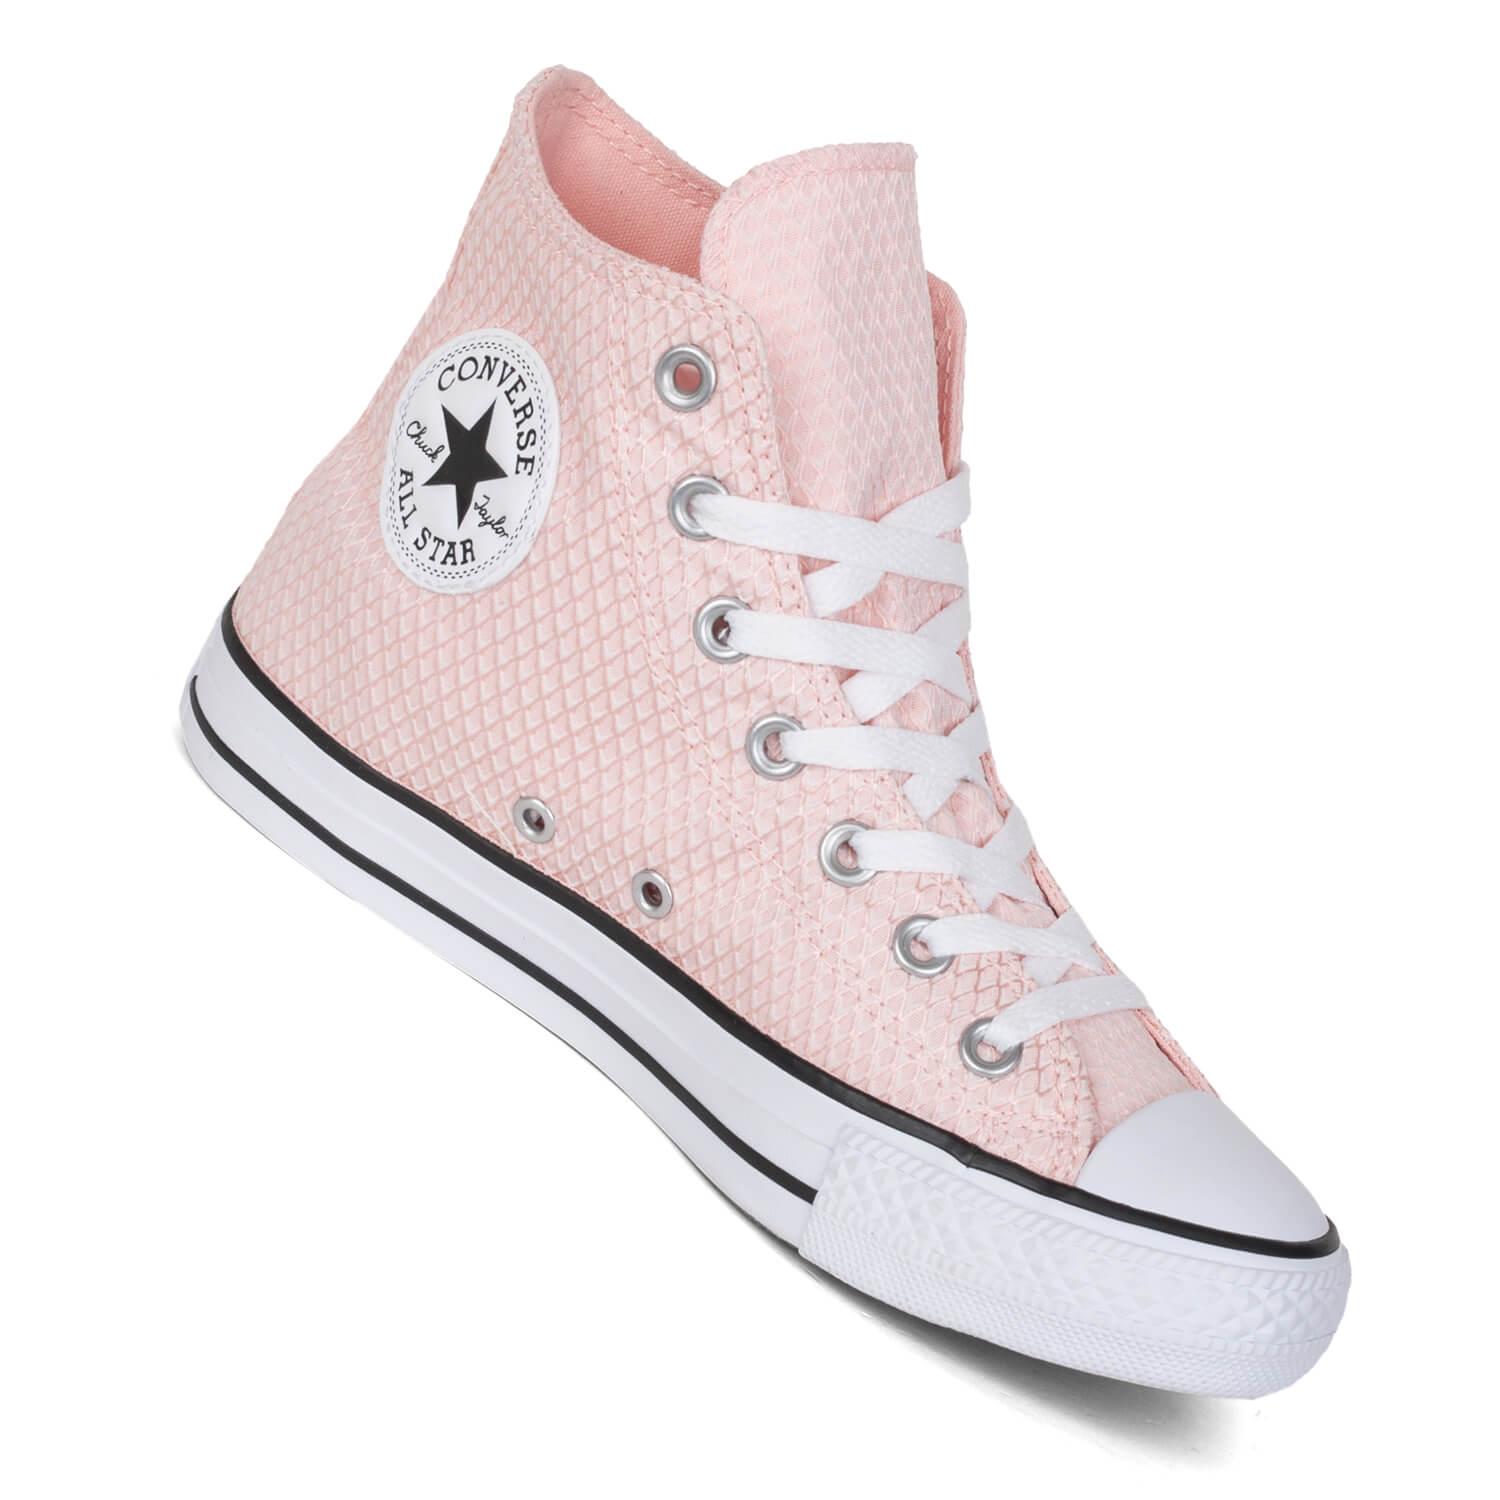 converse chucks damen rosa. Black Bedroom Furniture Sets. Home Design Ideas